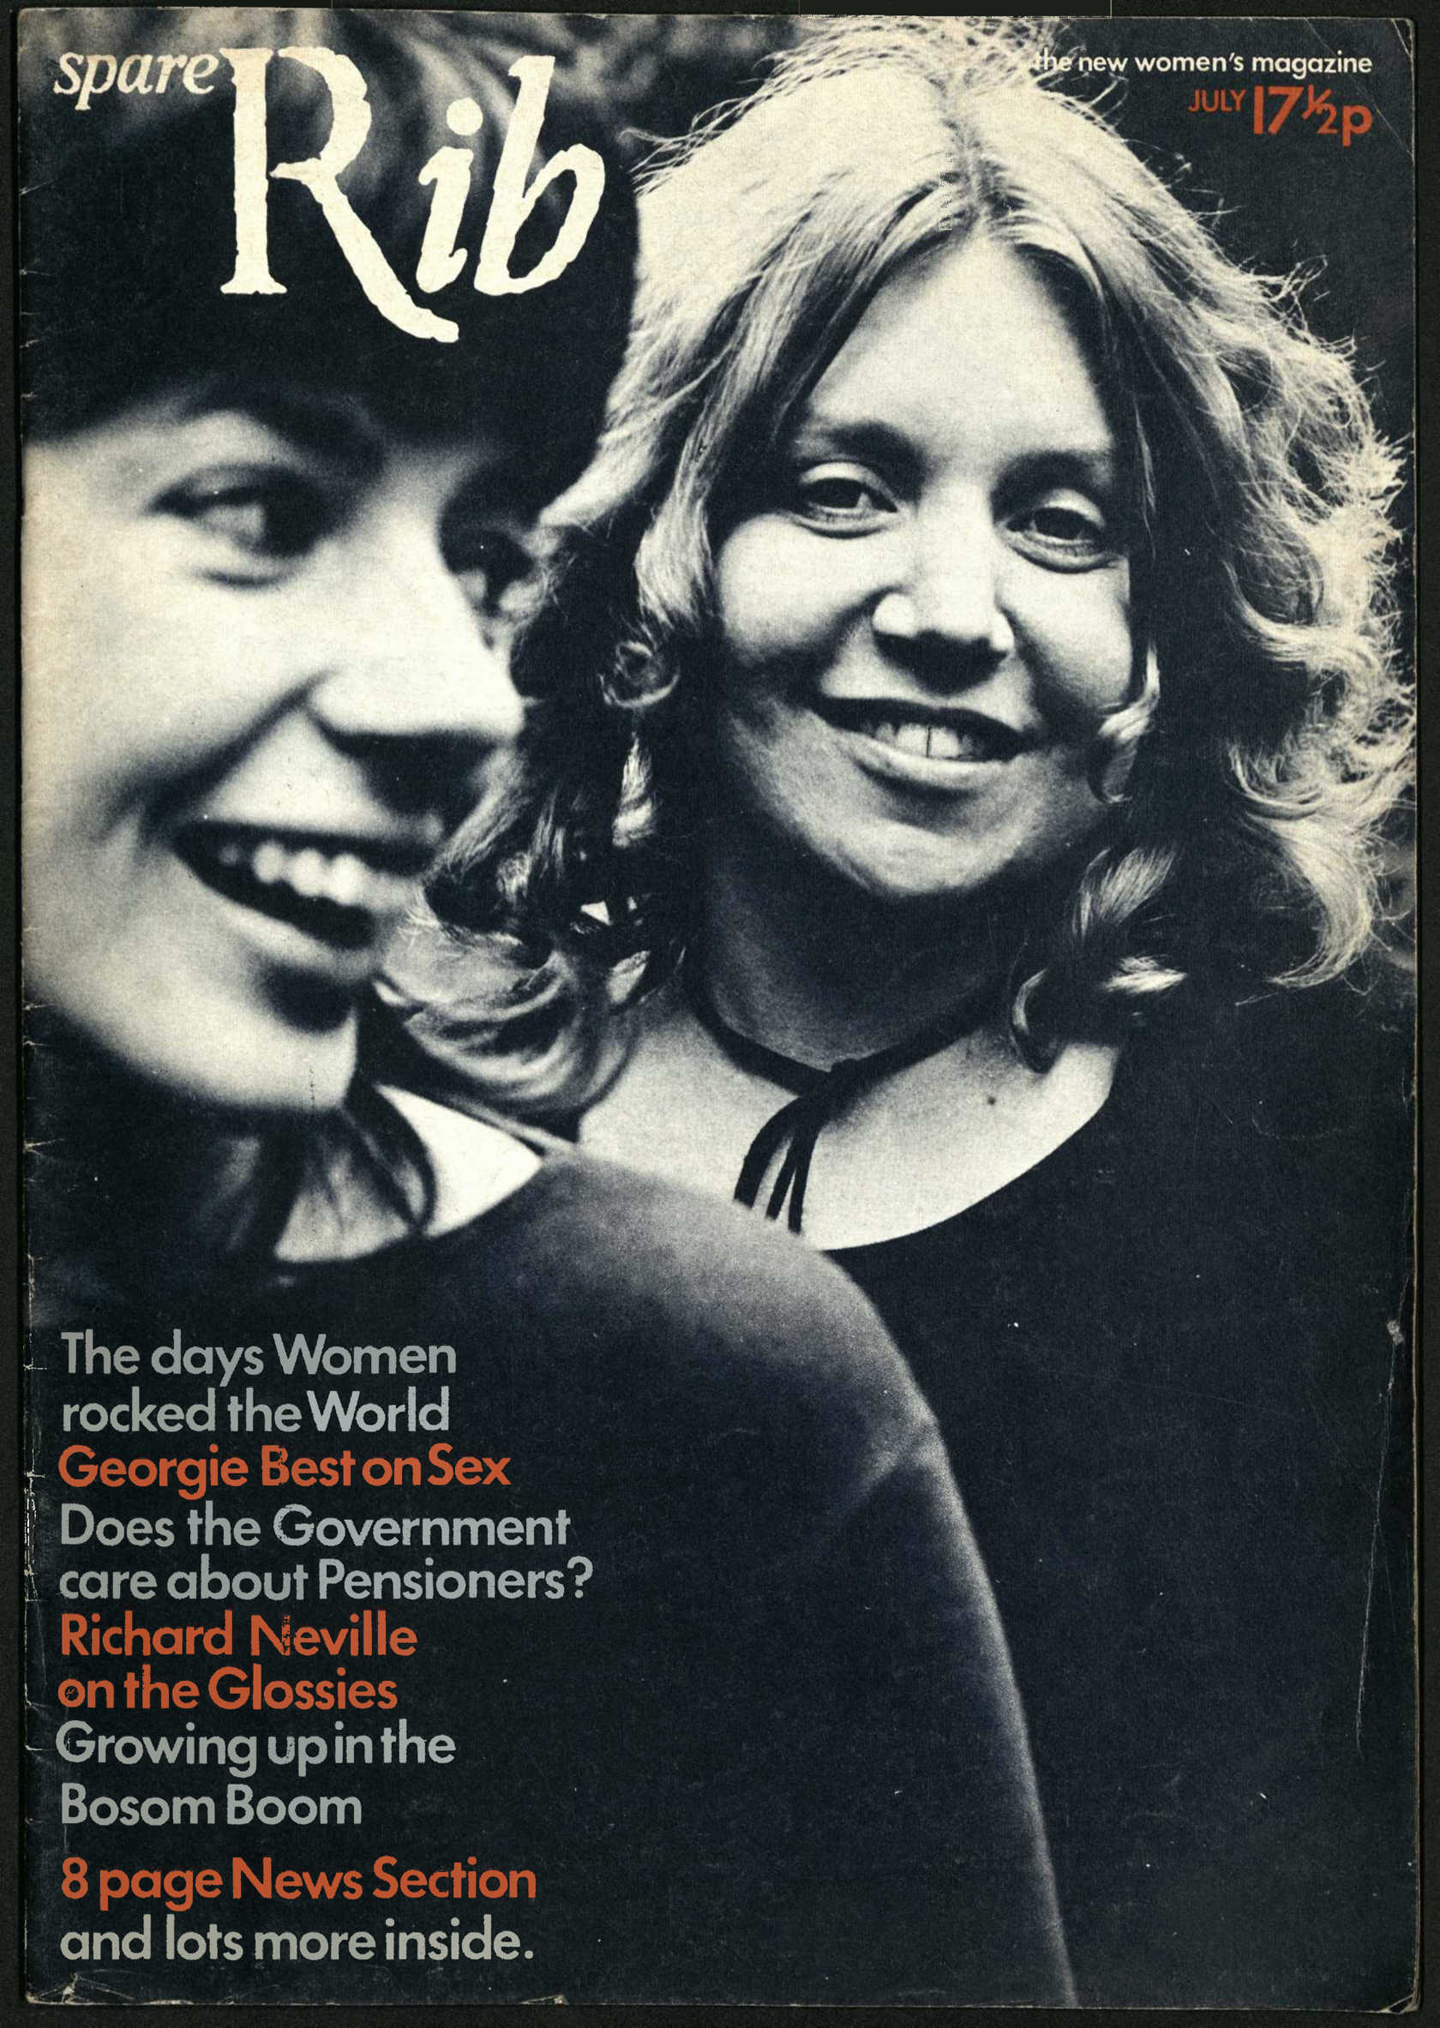 Rosie Boycott and Marsha Rowe, Spare Rib, Issue 1, July 1972